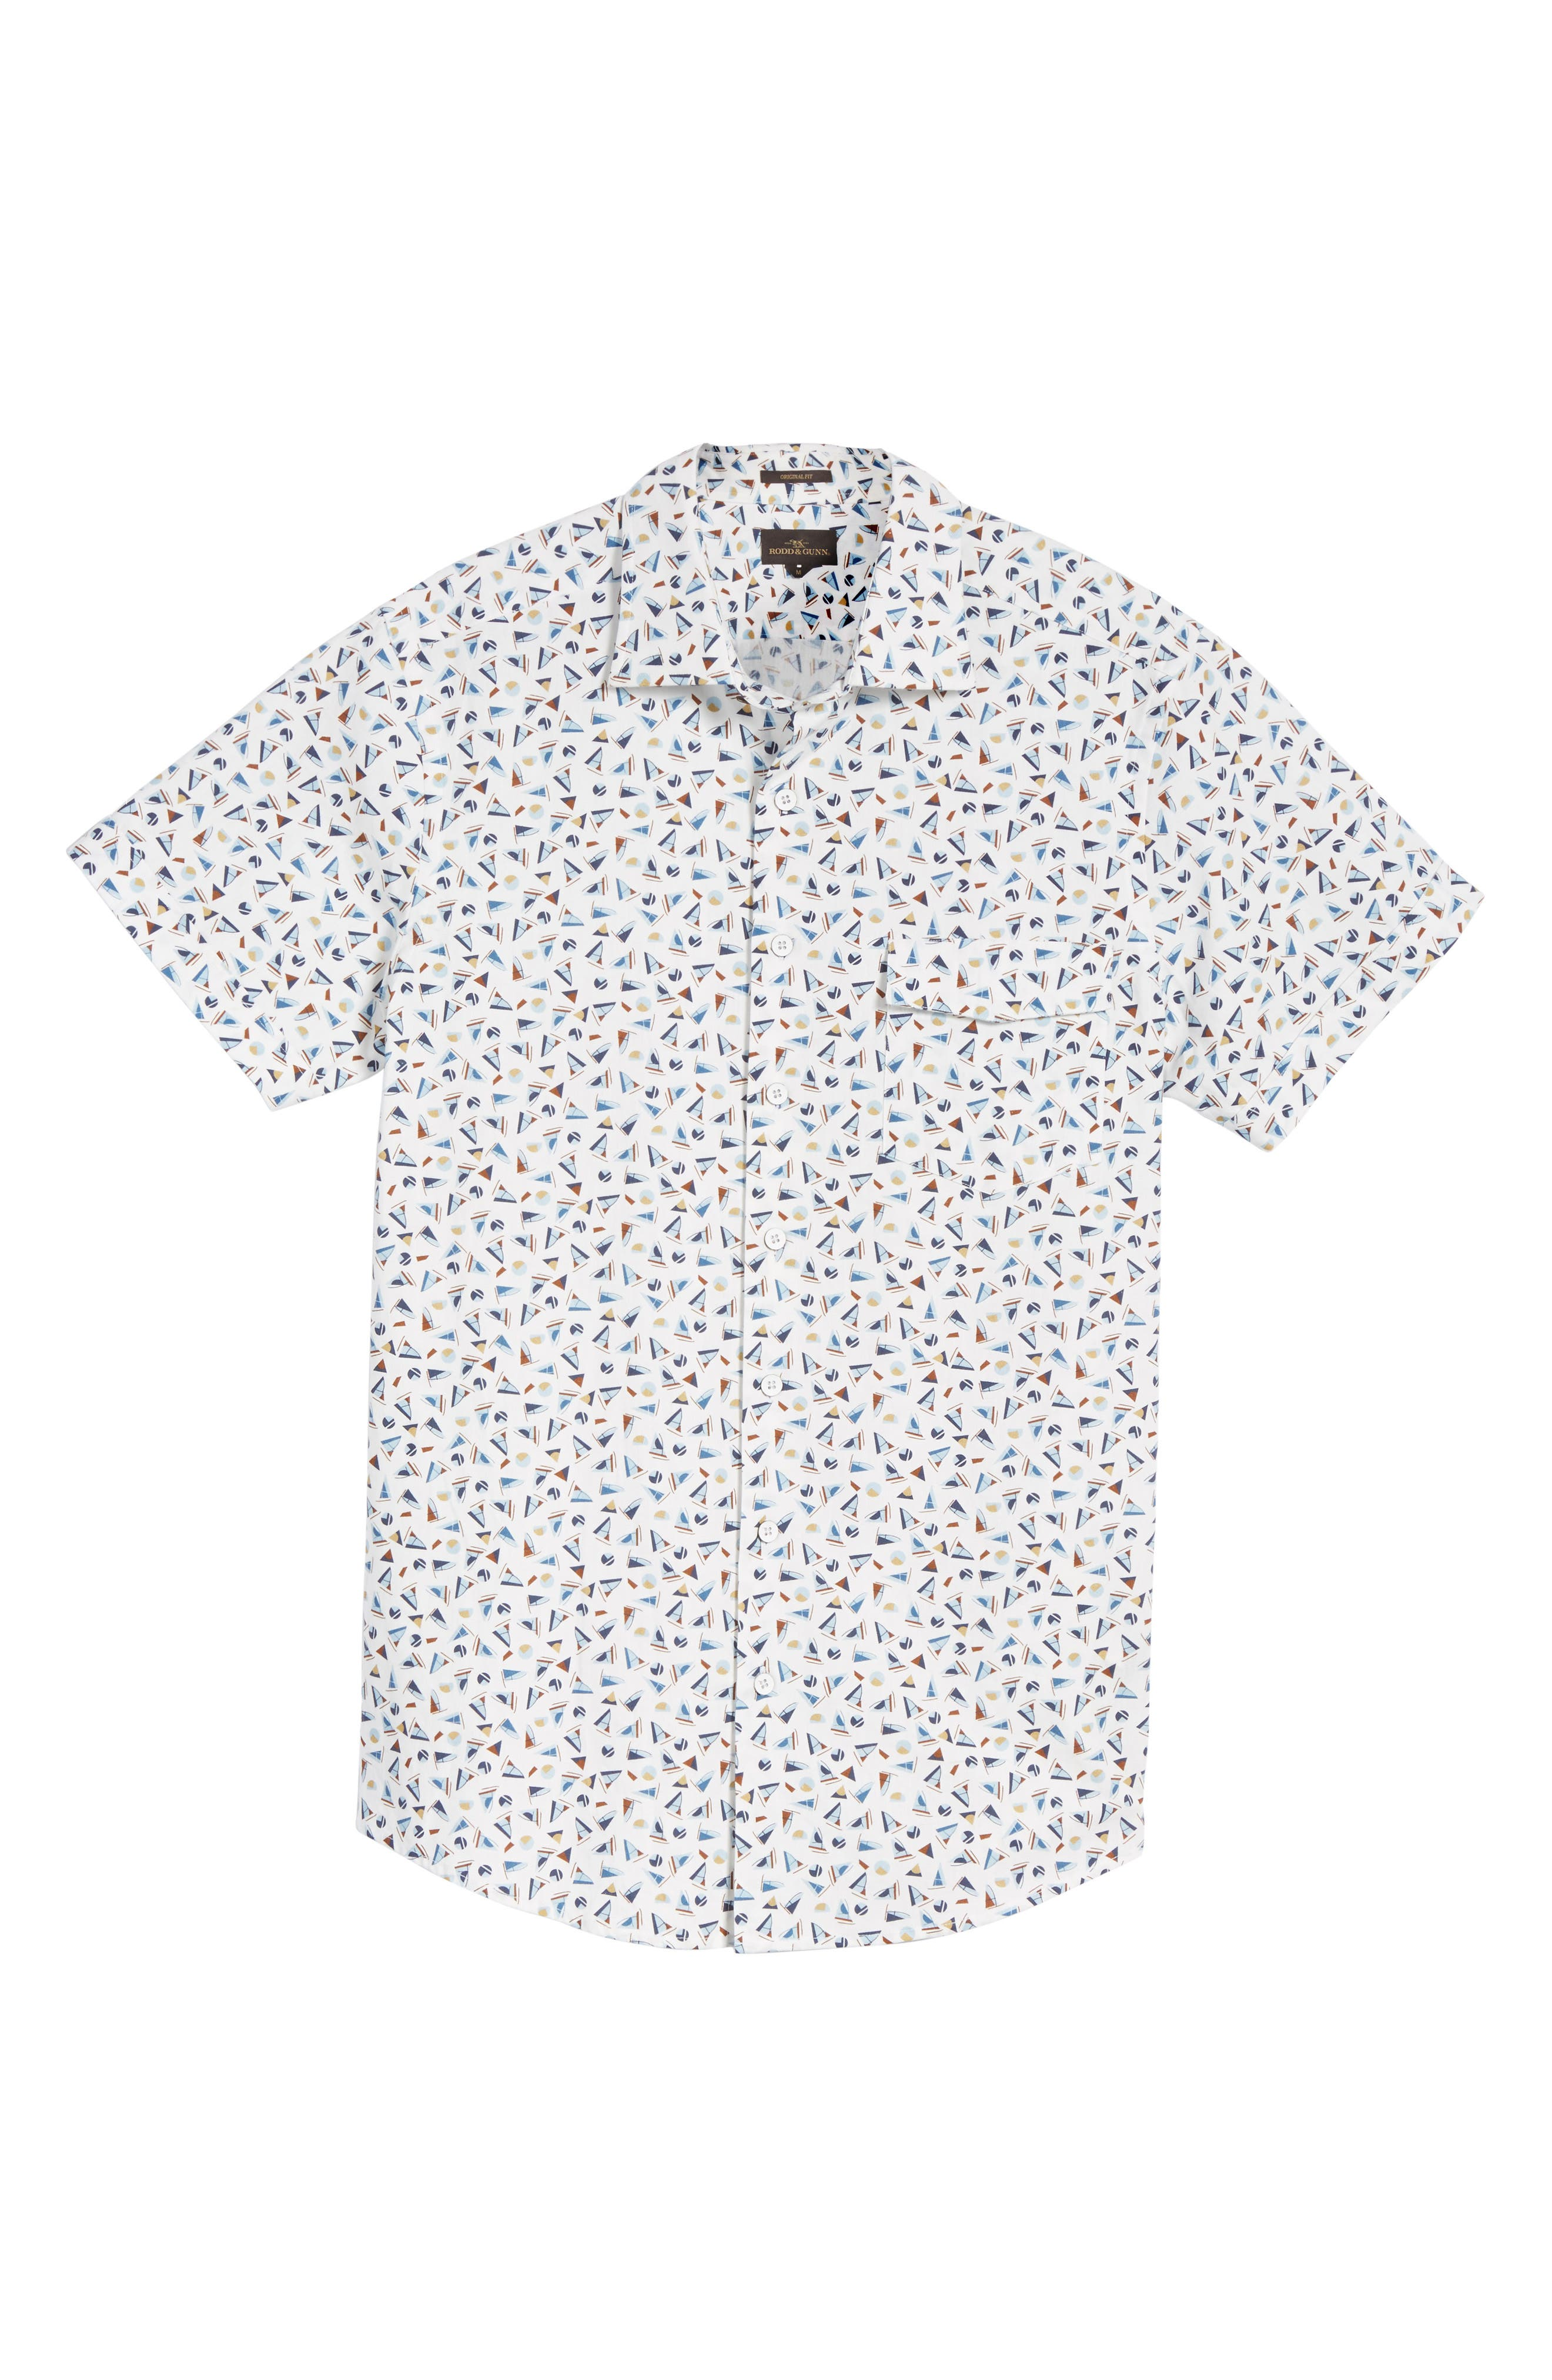 Coal Island Original Fit Print Sport Shirt,                             Alternate thumbnail 6, color,